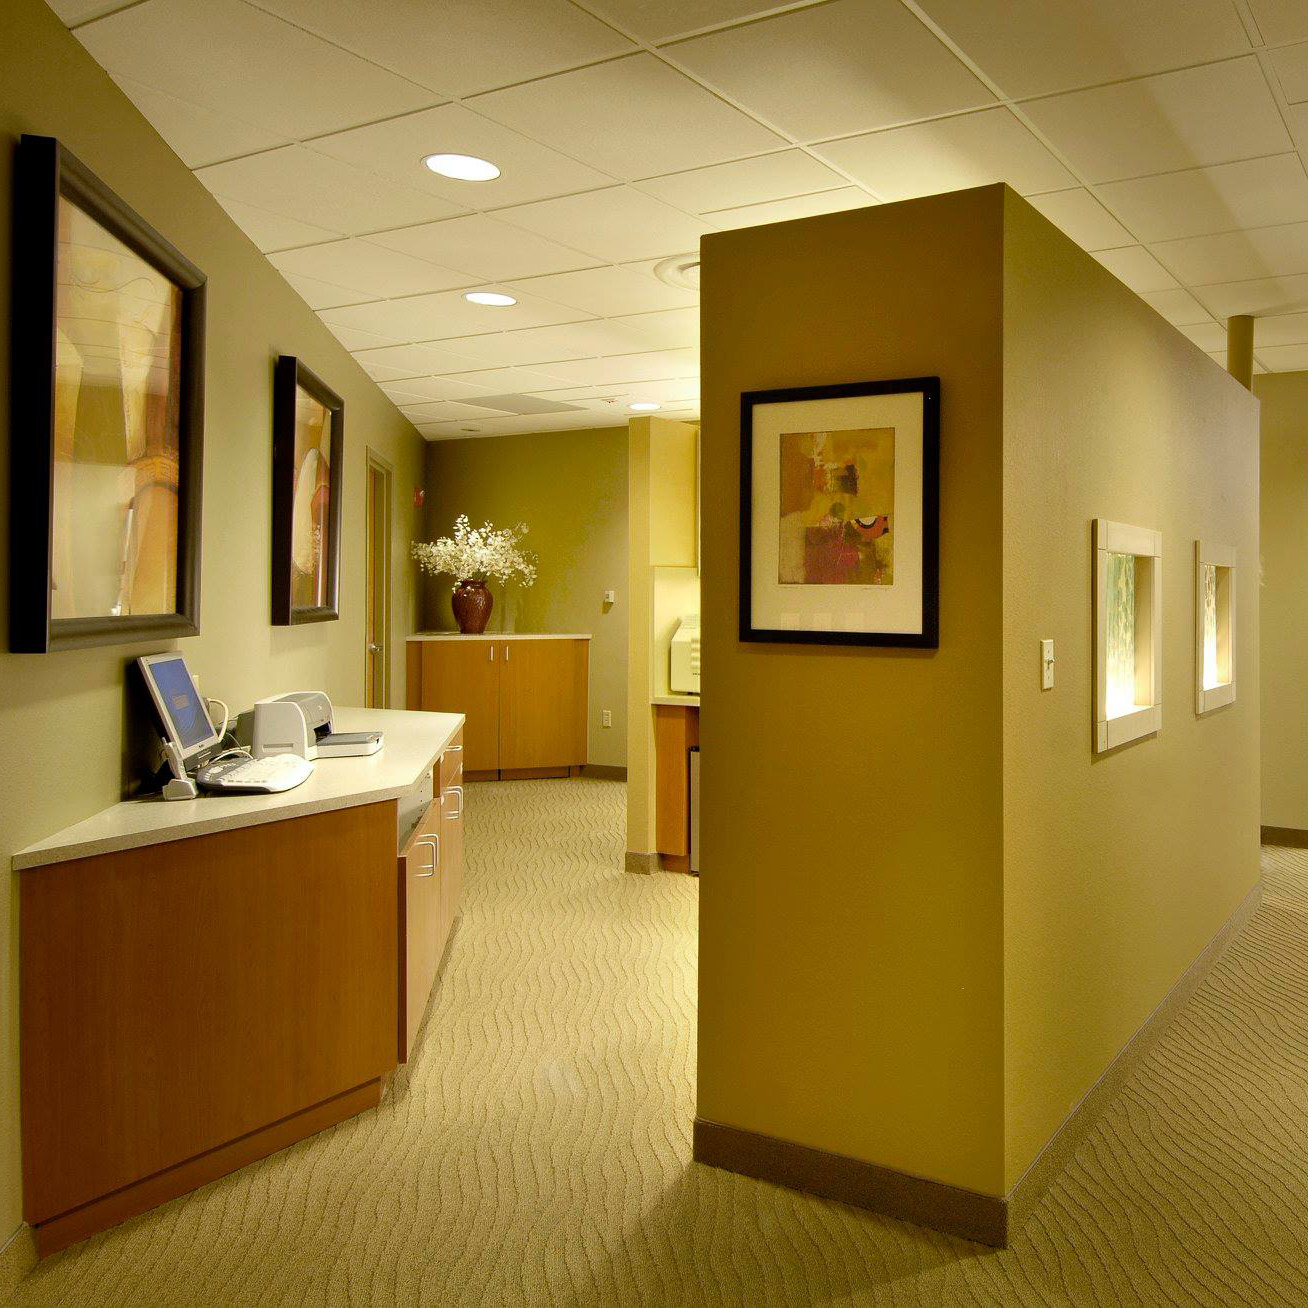 Creekview dental office